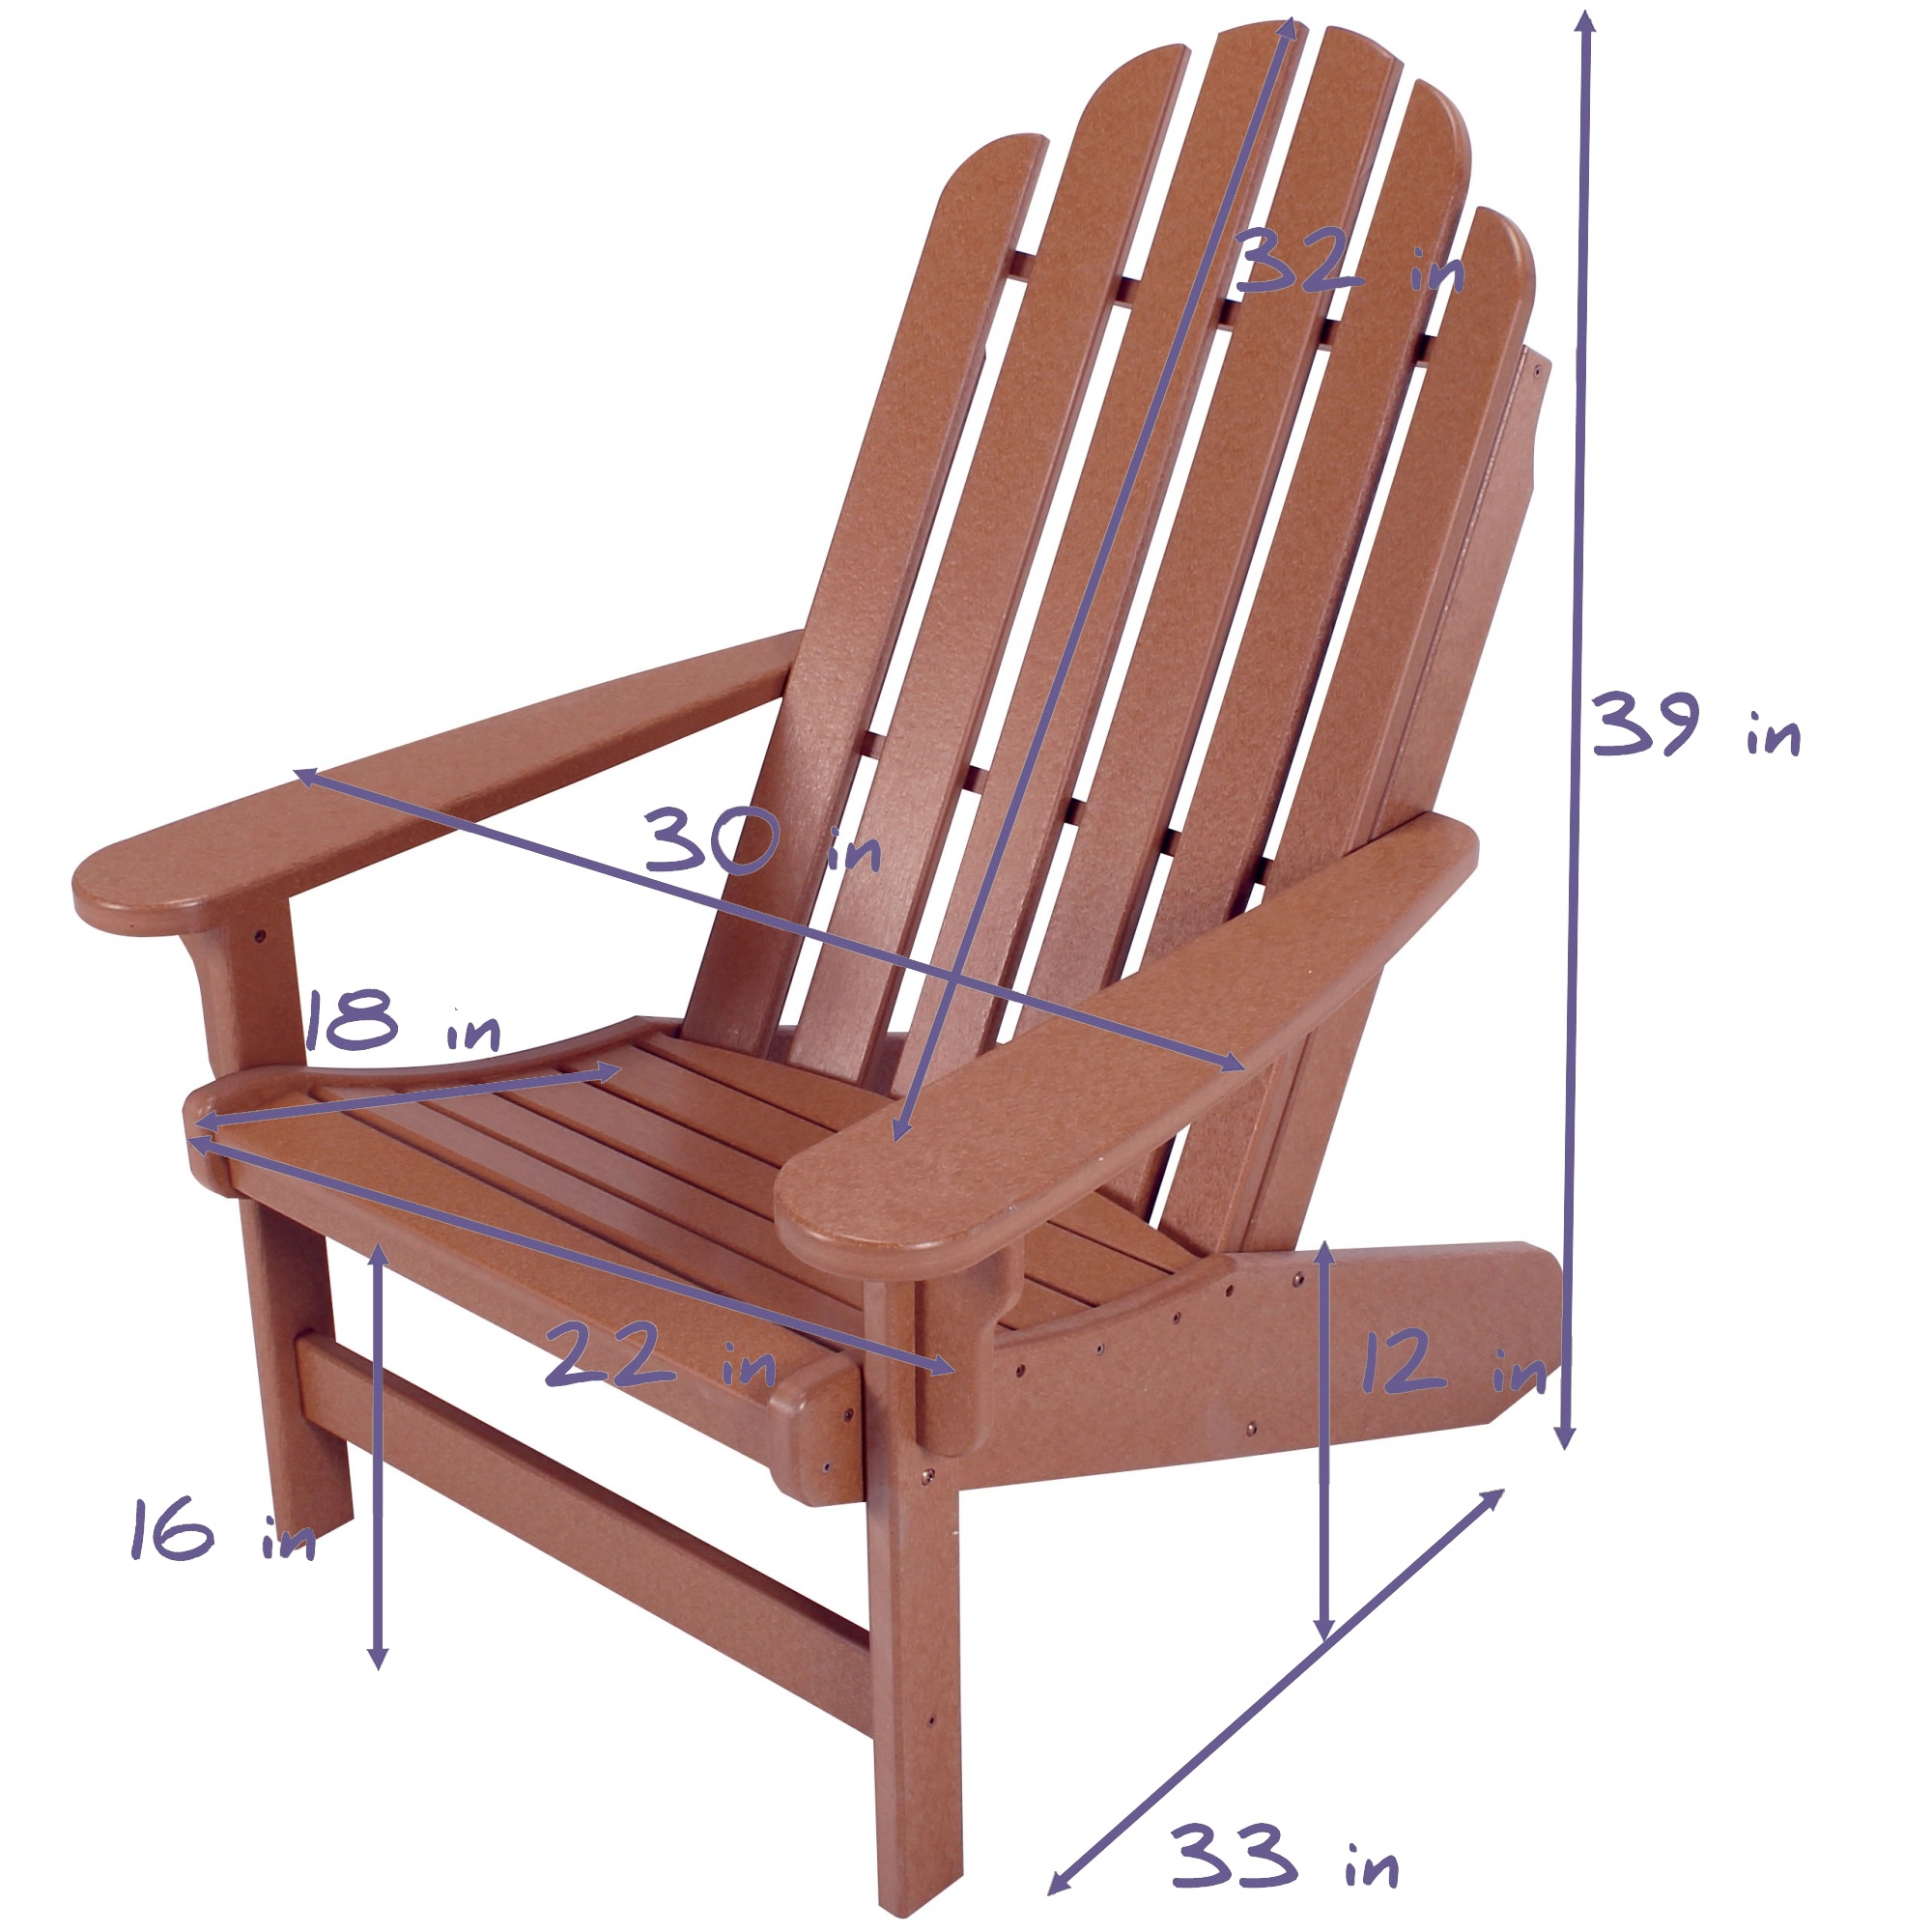 Lifetime Adirondack Chair Awesome Lifetime Adirondack Chair Rtty1 Rtty1